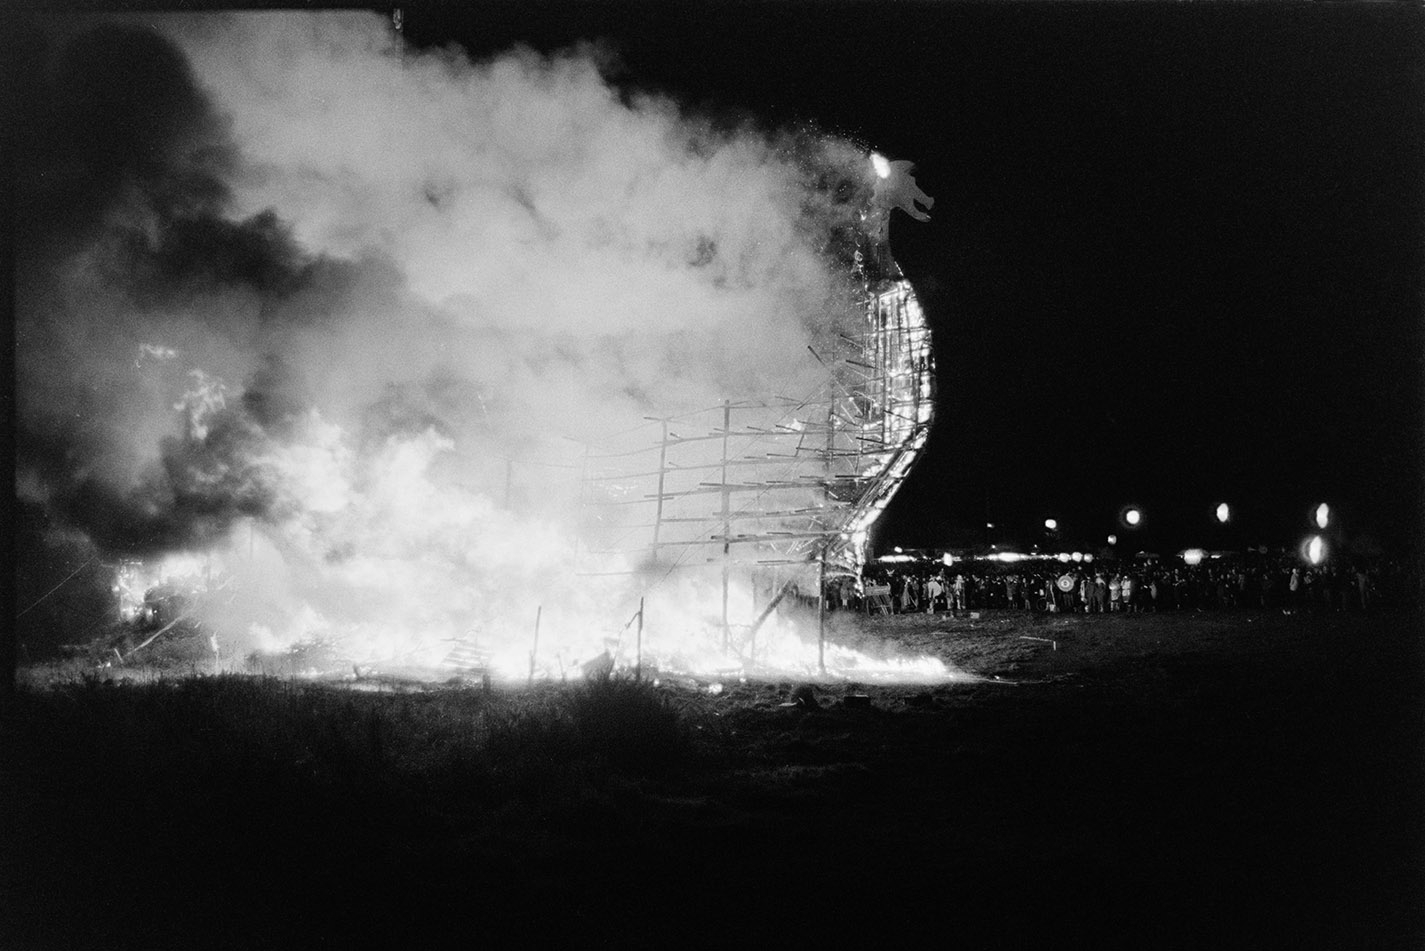 Burning skeleton of Viking ship, Torrington Fair, 2 November 1974